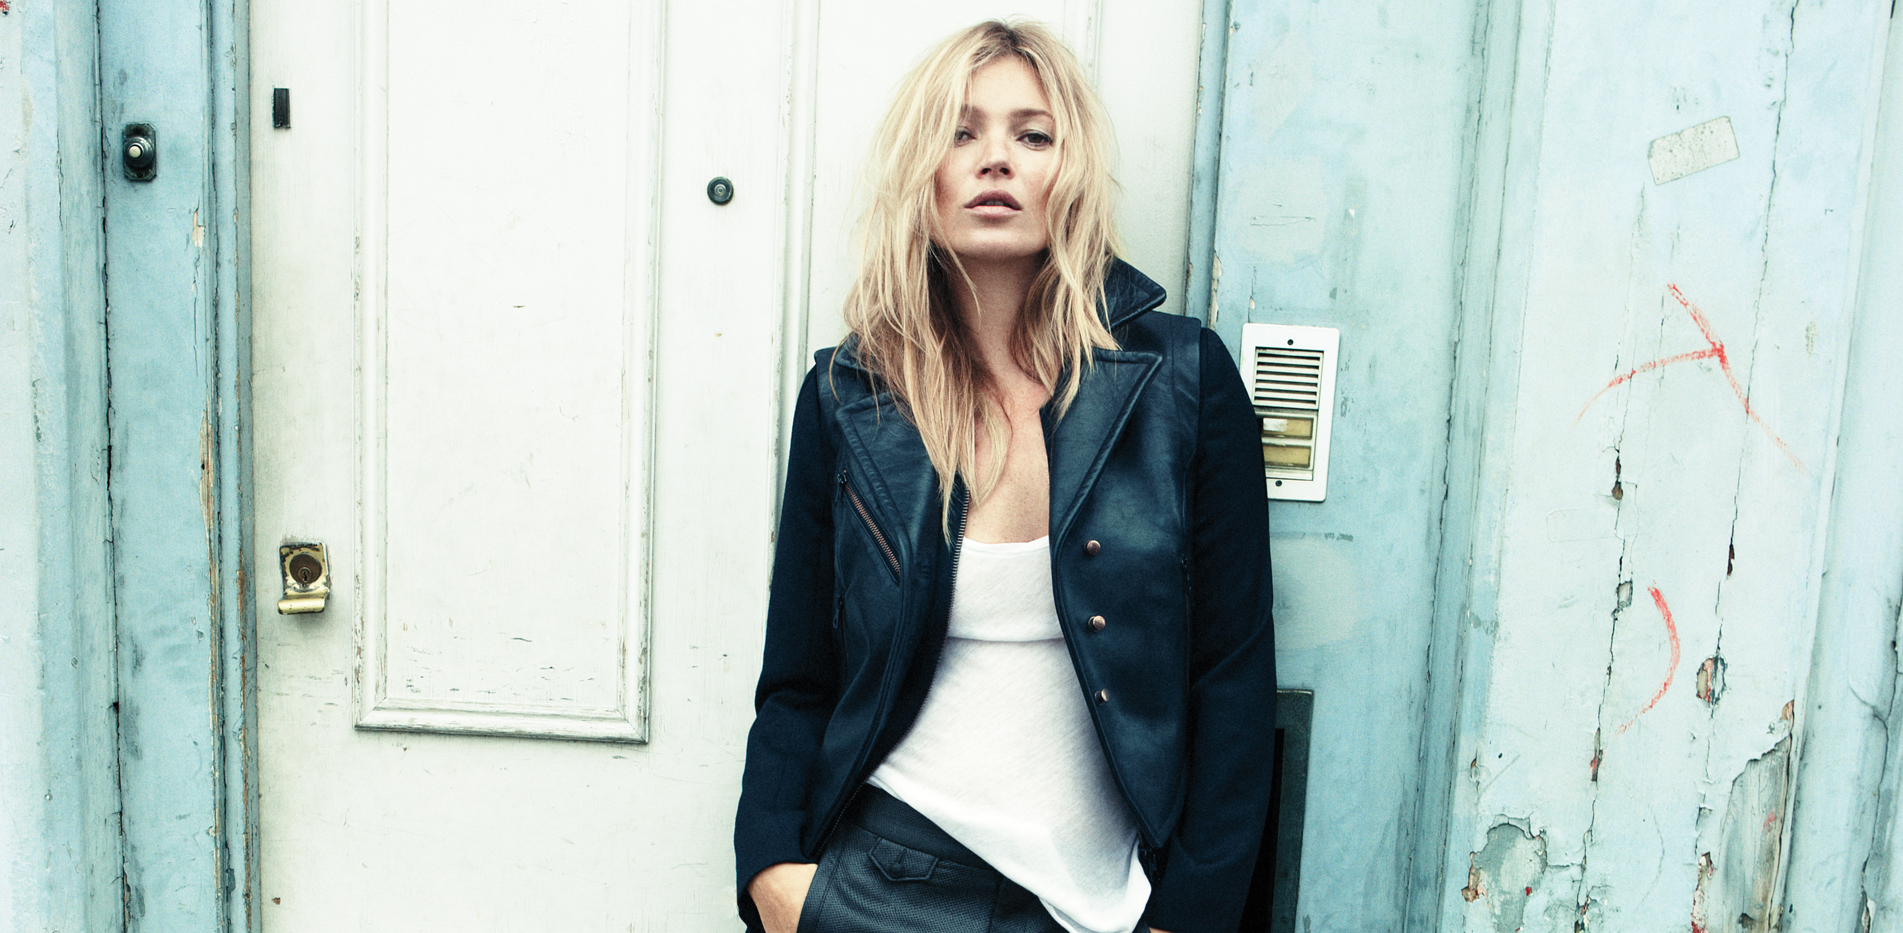 1347959978_kate_moss_in_an_advertising_campaign_rag_bone_autumn_winter_2012_2013_01.jpg